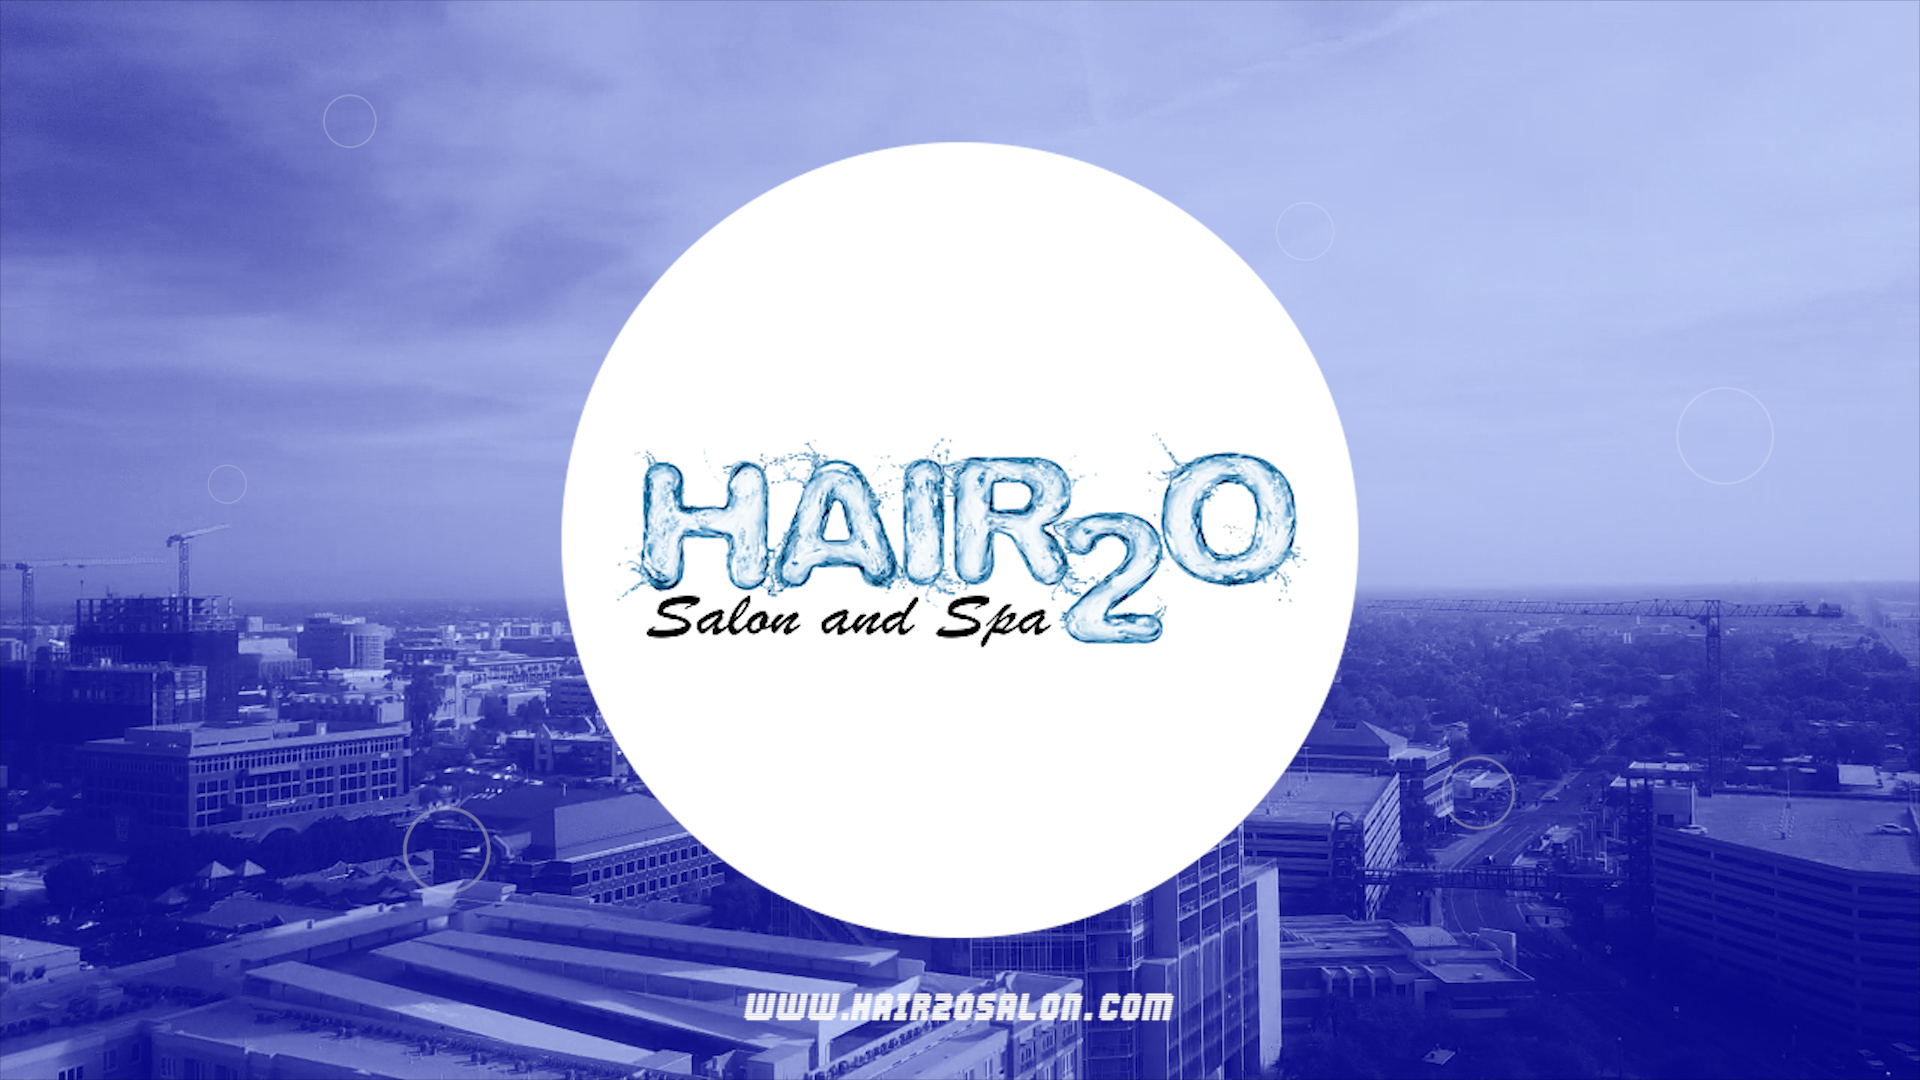 Salon But Promo Hair2o Salon Tempe Az S Premium Hair Salon Your Look Is Our